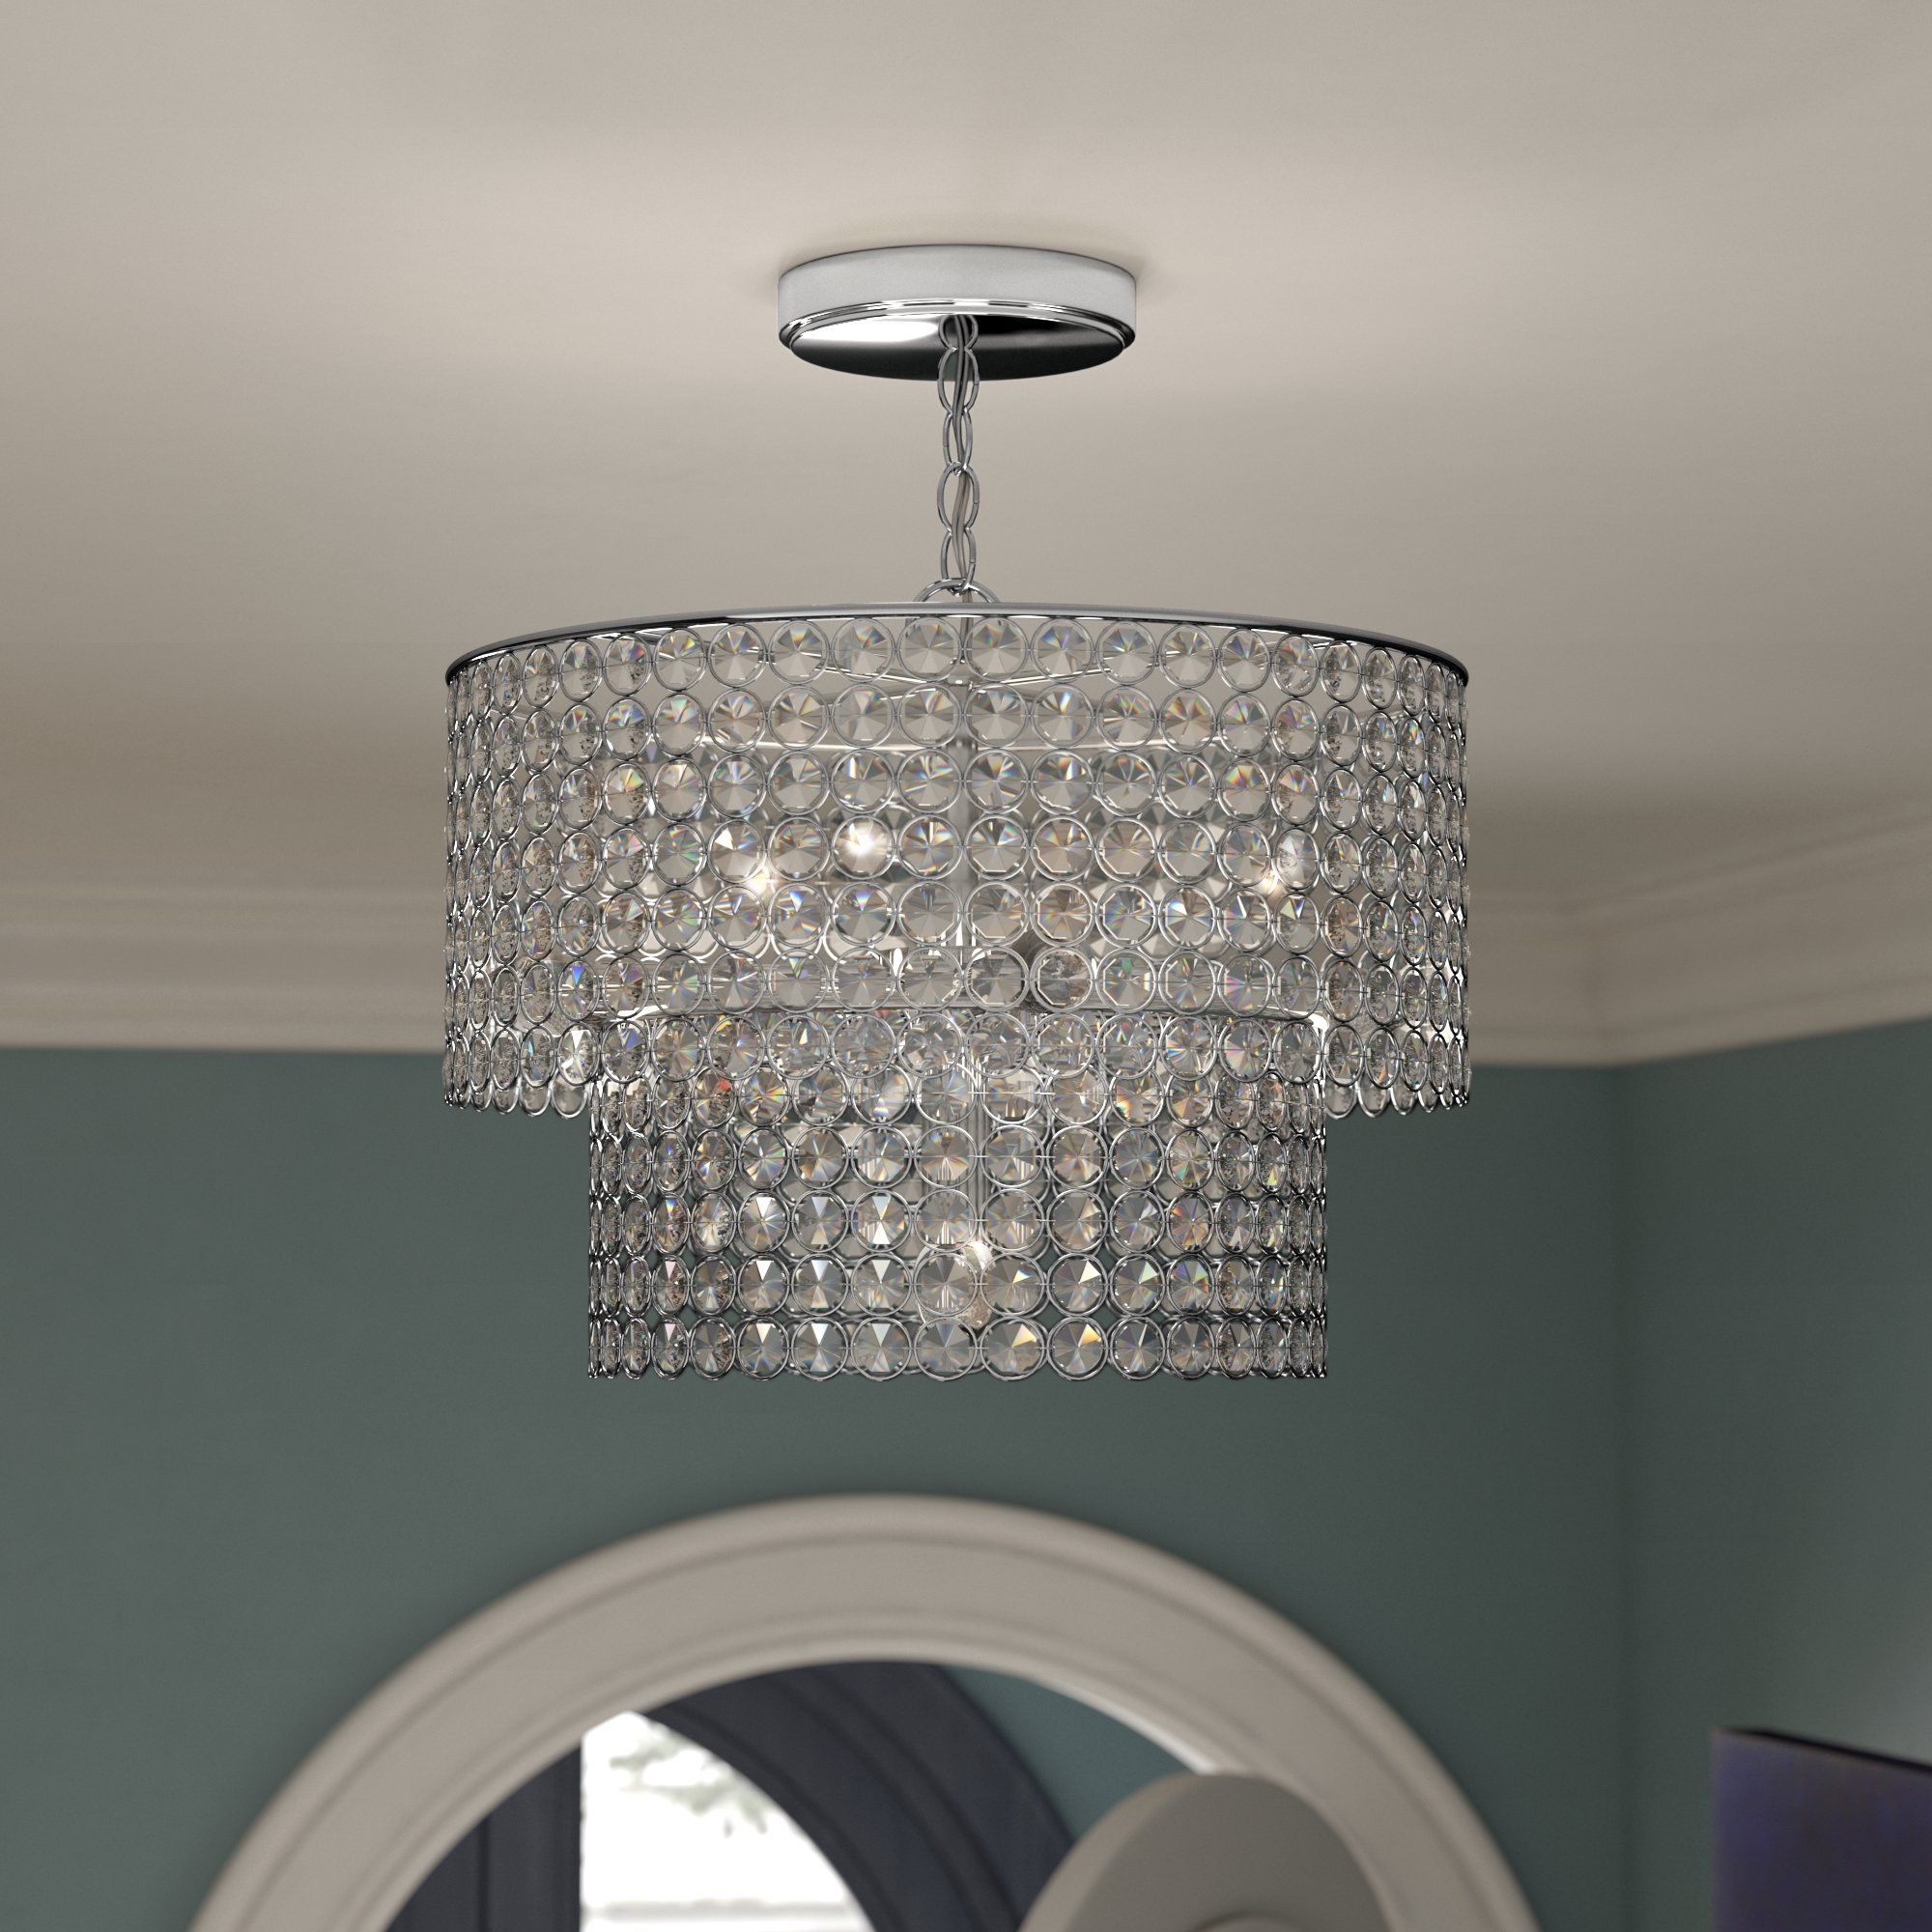 Latest Verdell 5 Light Crystal Chandeliers Pertaining To Saltford 5 Light Crystal Chandelier (View 14 of 25)